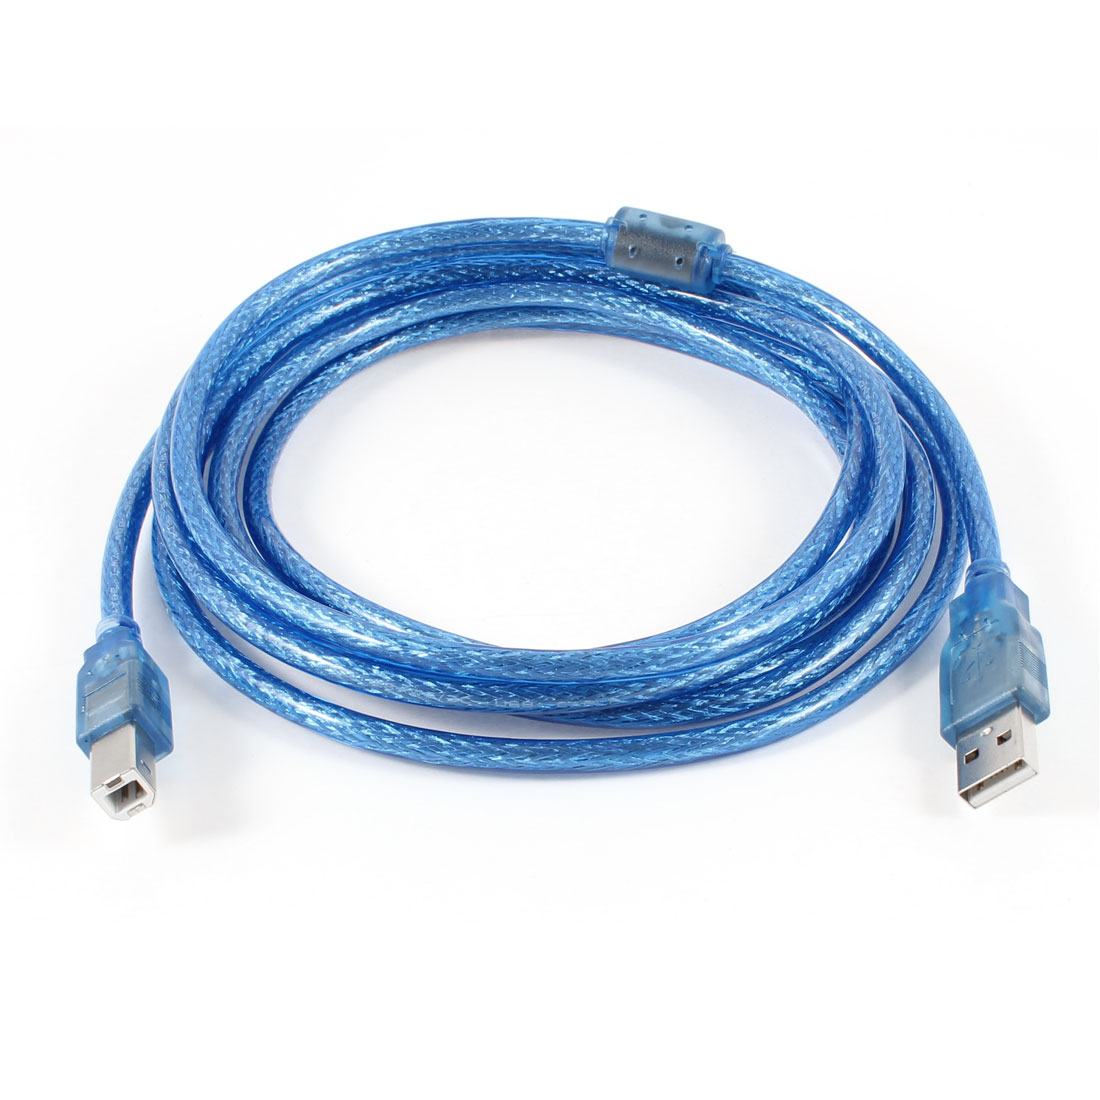 3 Meter USB2.0 A Male to B Male Printer Extension Cable Blue